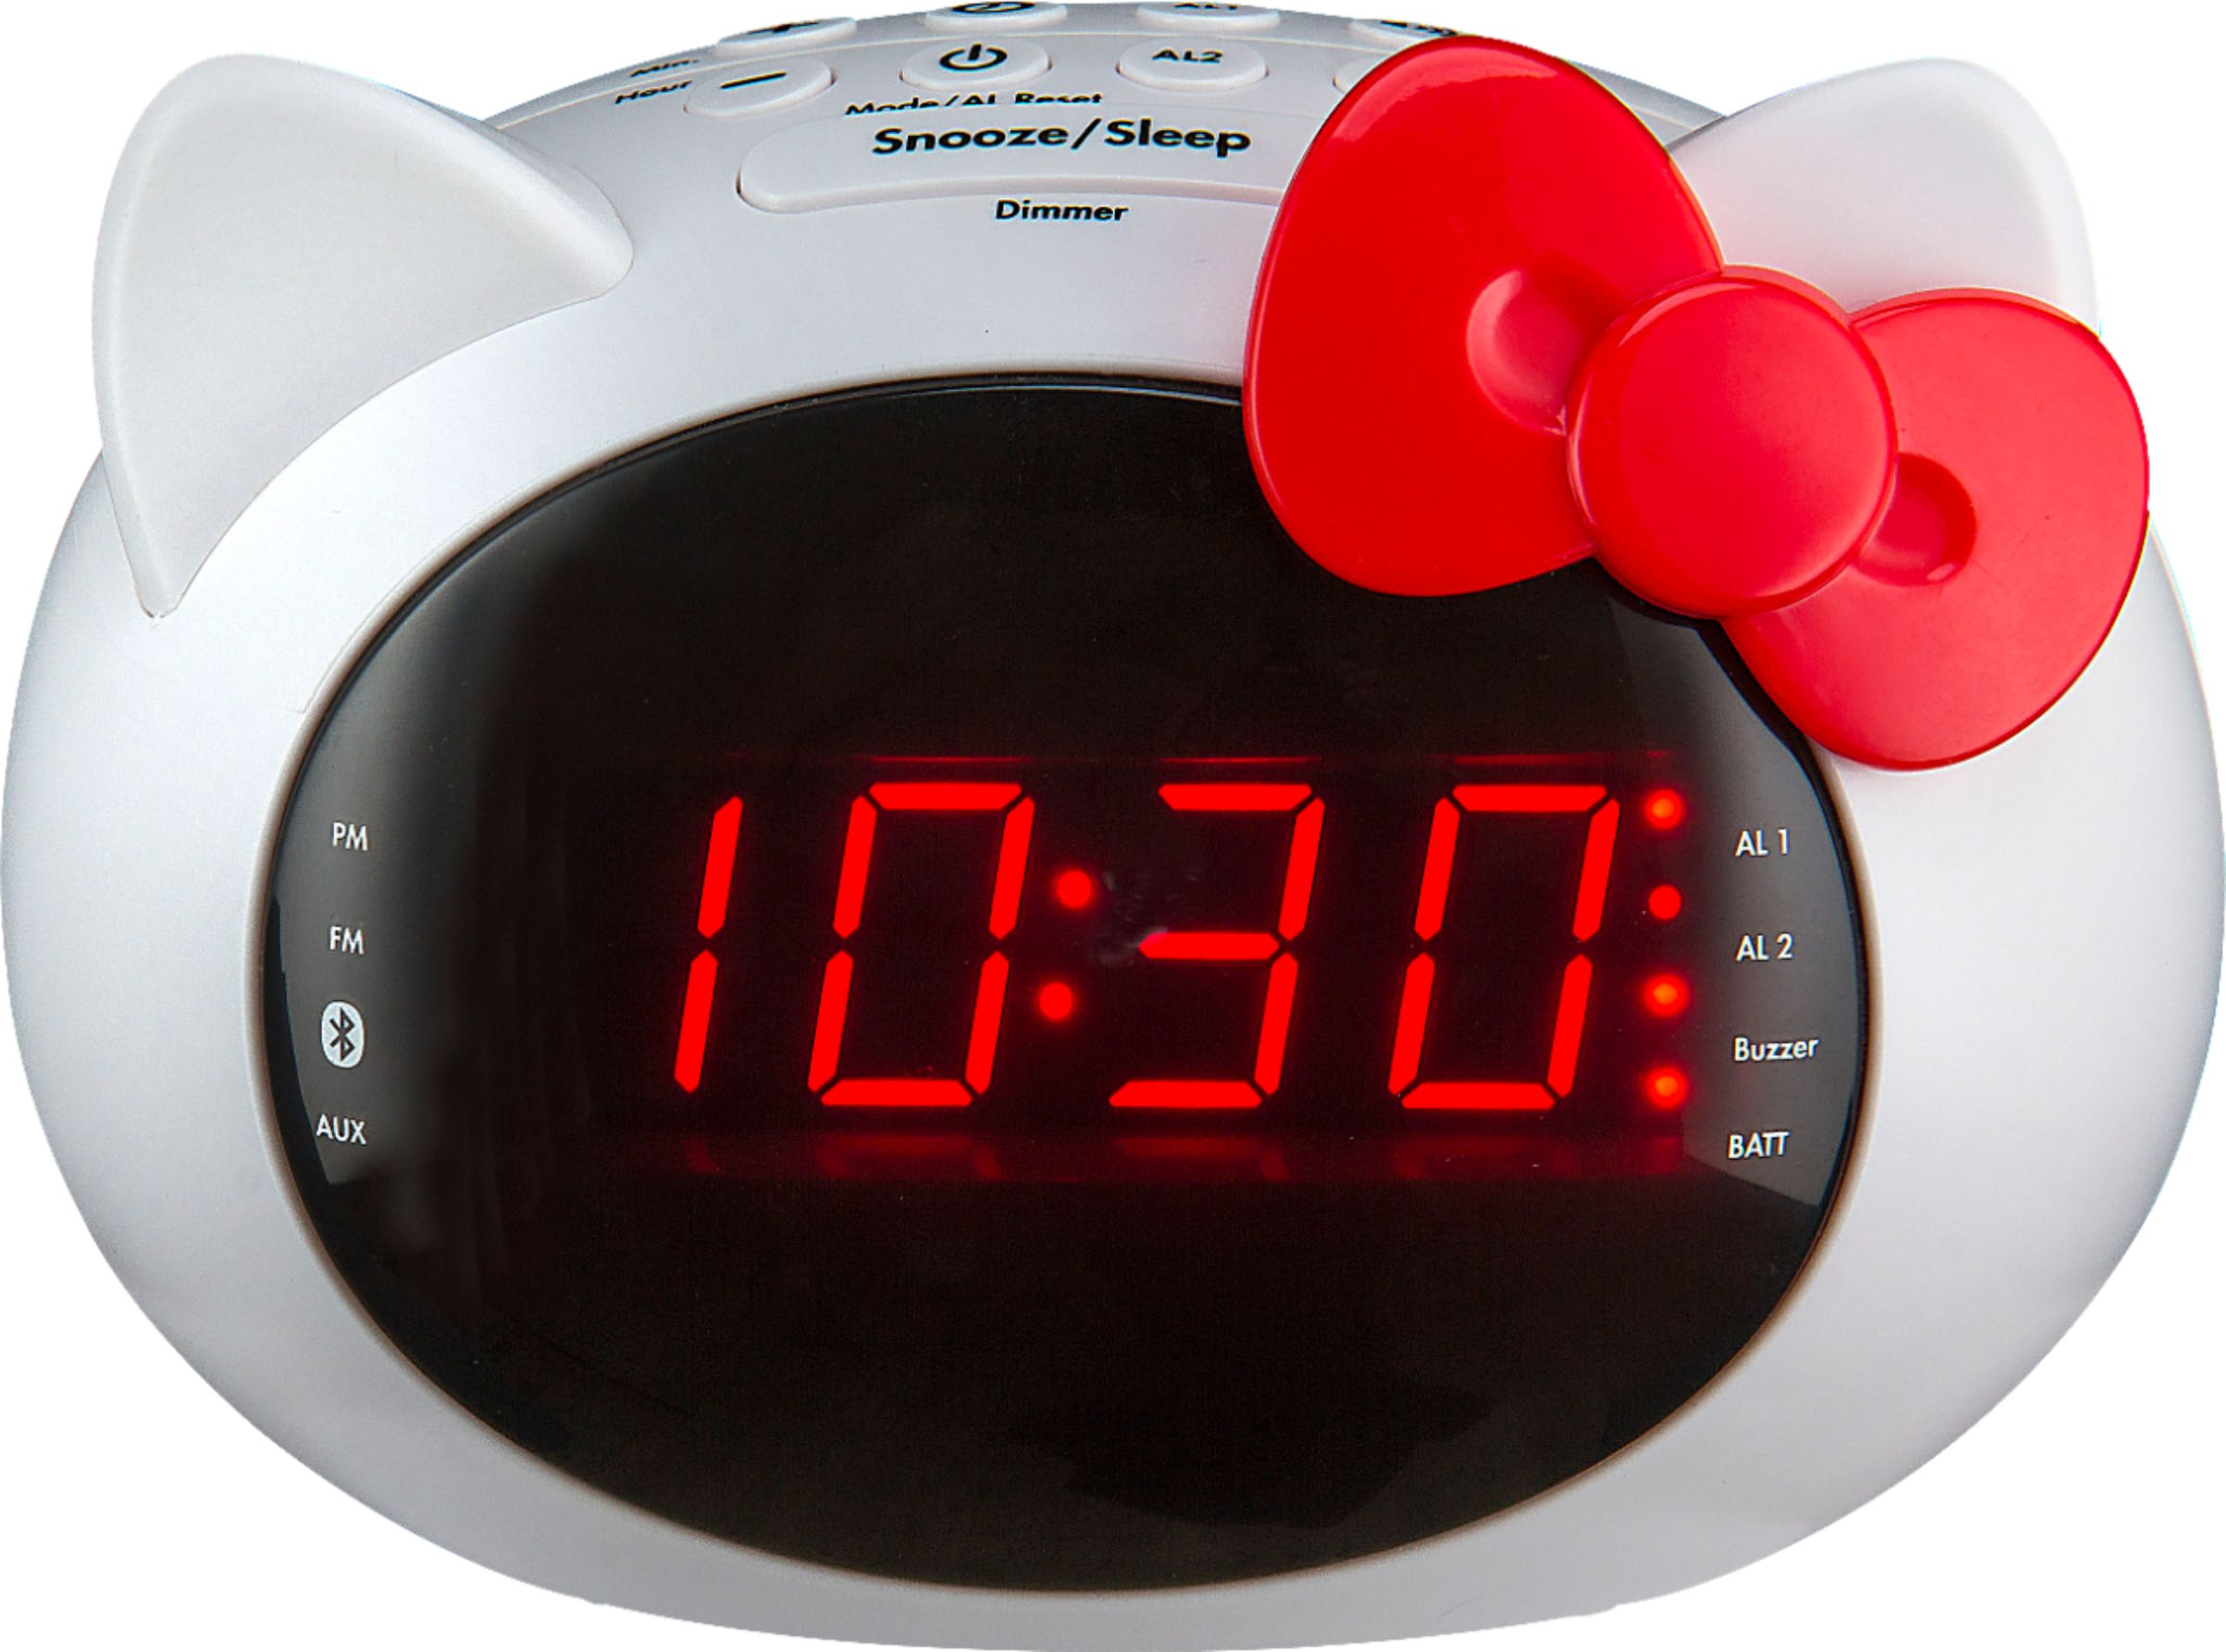 Digital Clock Ekids Digital Fm Clock Radio White Pink Black